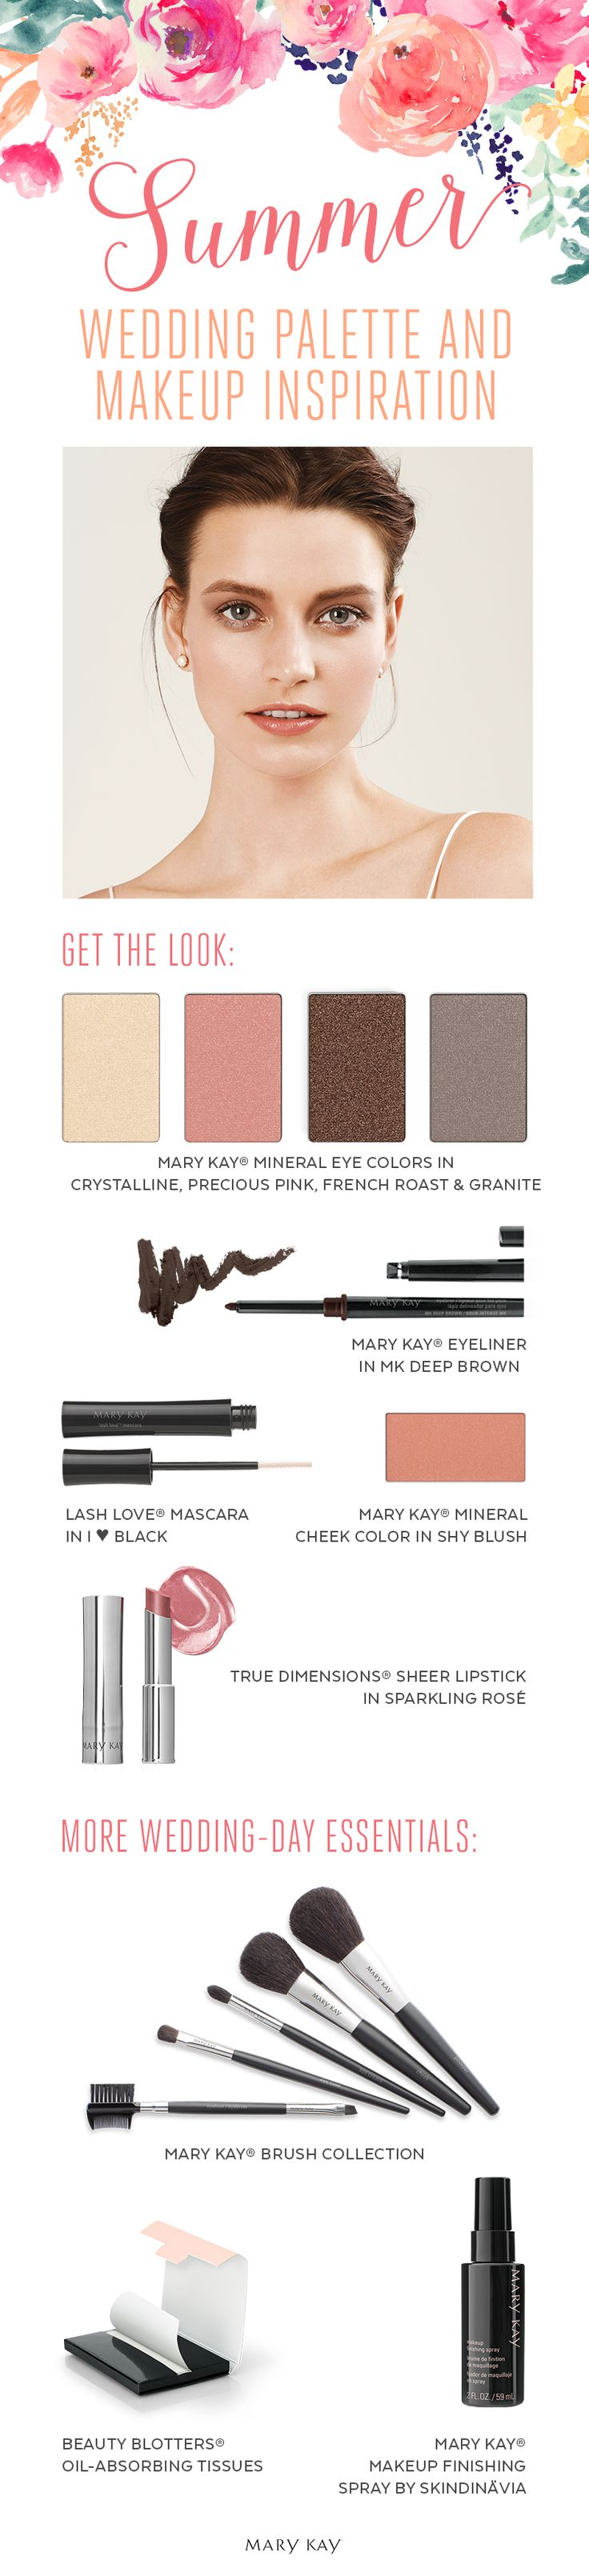 A makeup palette perfect for those planning a summer wedding wonderland! Get this natural bridal beauty look with Mary Kay® Mineral Eye Colors in Crystalline, Precious Pink, French Roast and Granite, and True Dimensions® Sheer Lipstick in Sparkling Rosé.